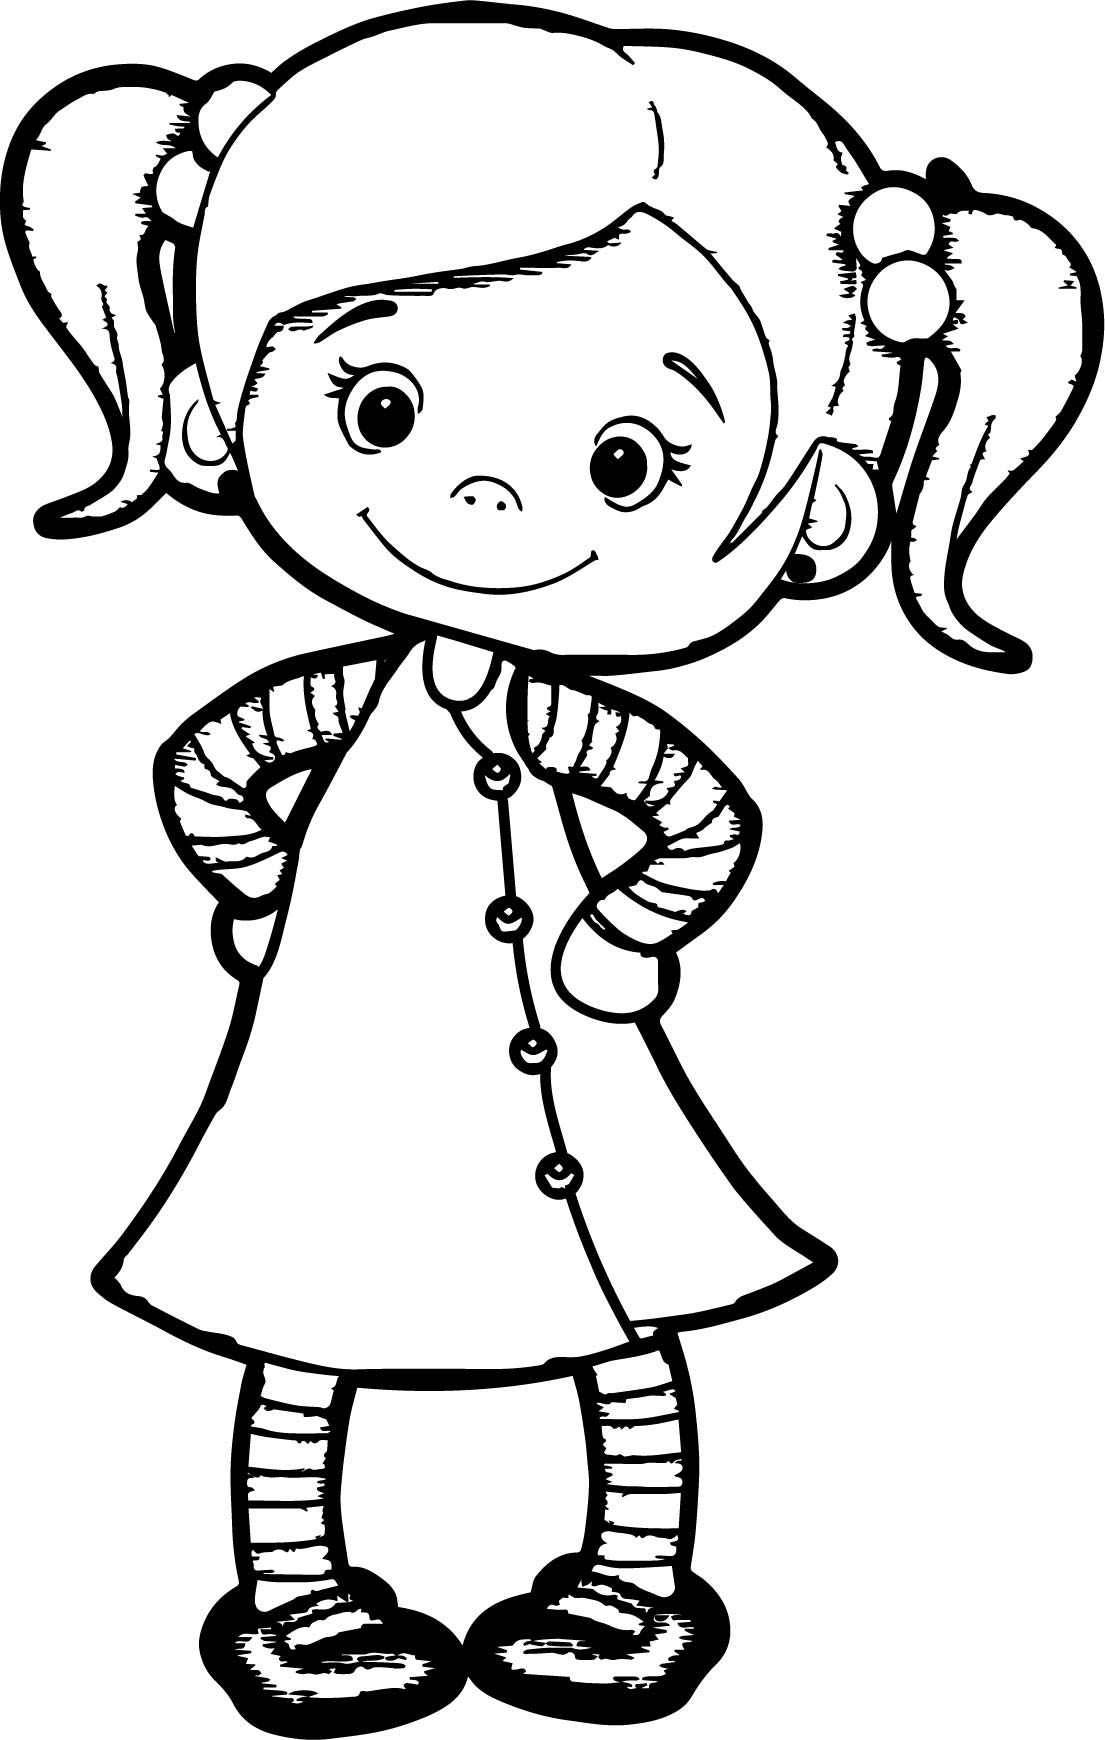 free girl coloring pages 8 anime girl coloring pages pdf jpg ai illustrator pages coloring free girl